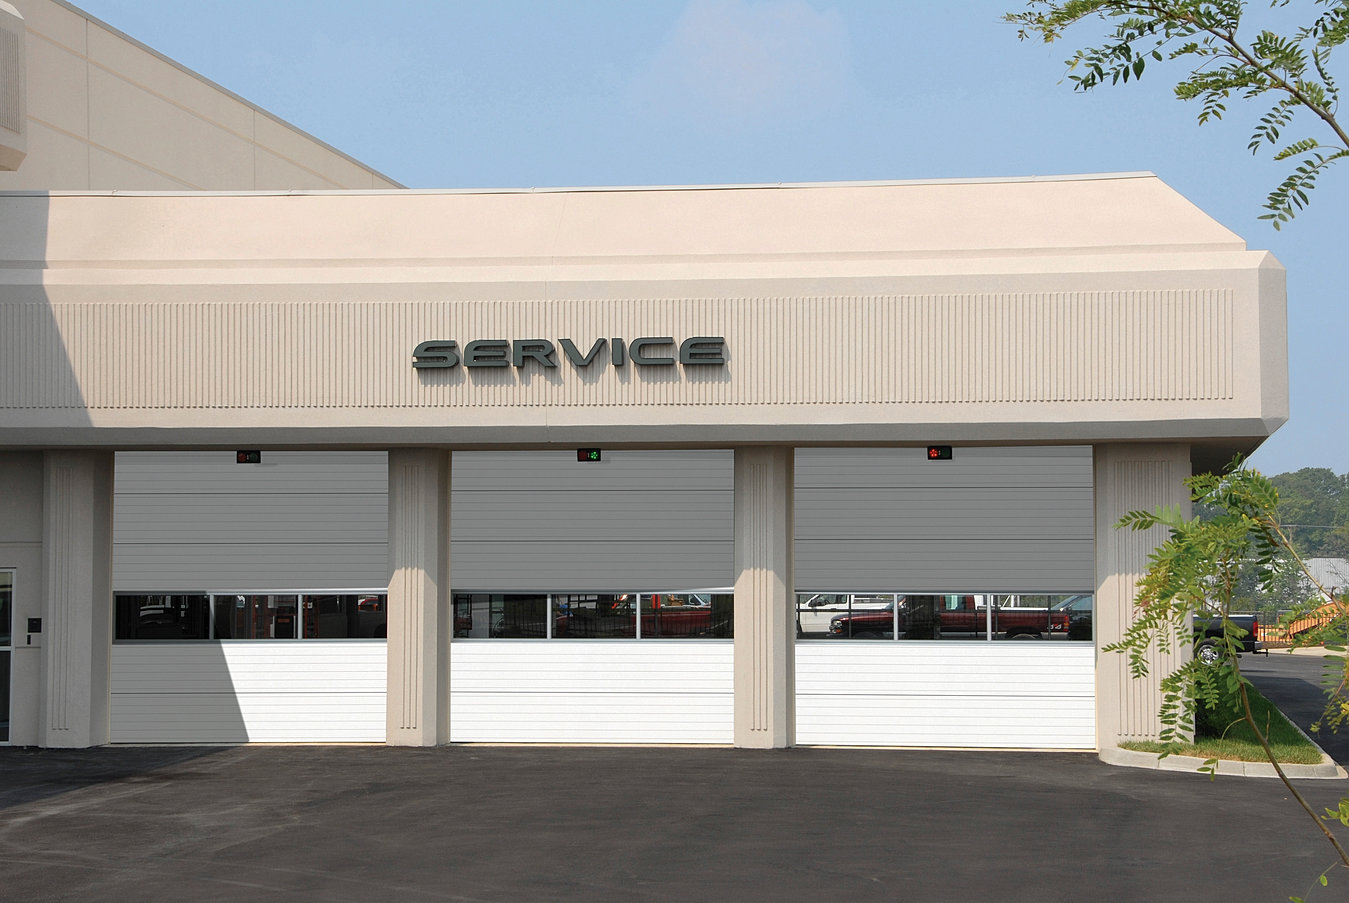 Overhead Door overhead door little rock images : Canadian Doormaster - Garage Doors Vancouver